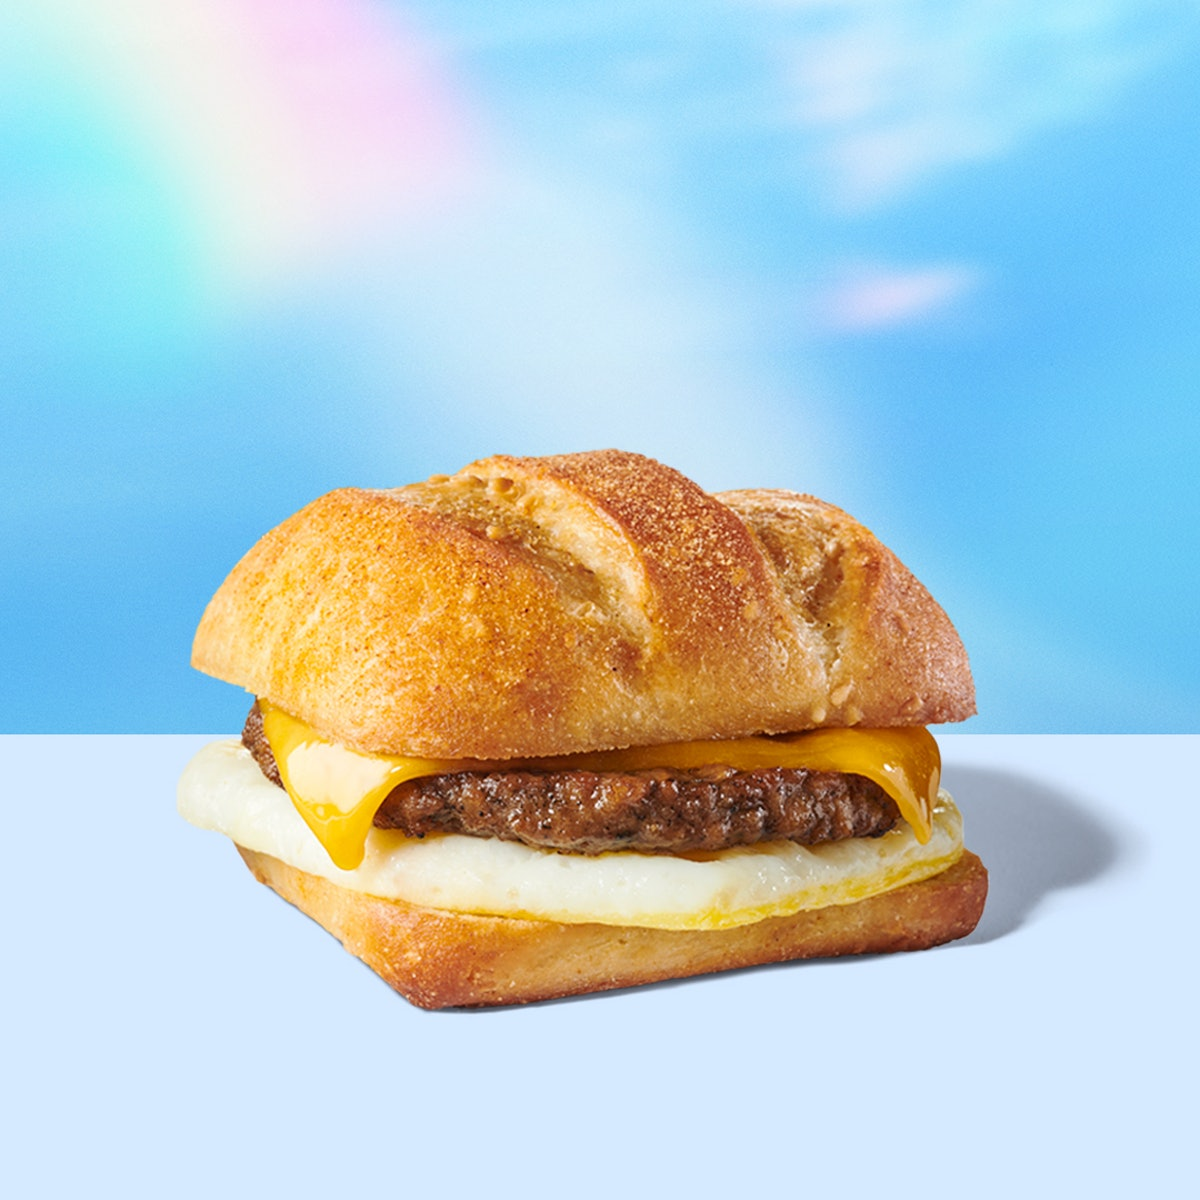 Starbucks' January 2021 Meatless Mondays deal includes $2 off its Impossible Breakfast Sandwich.